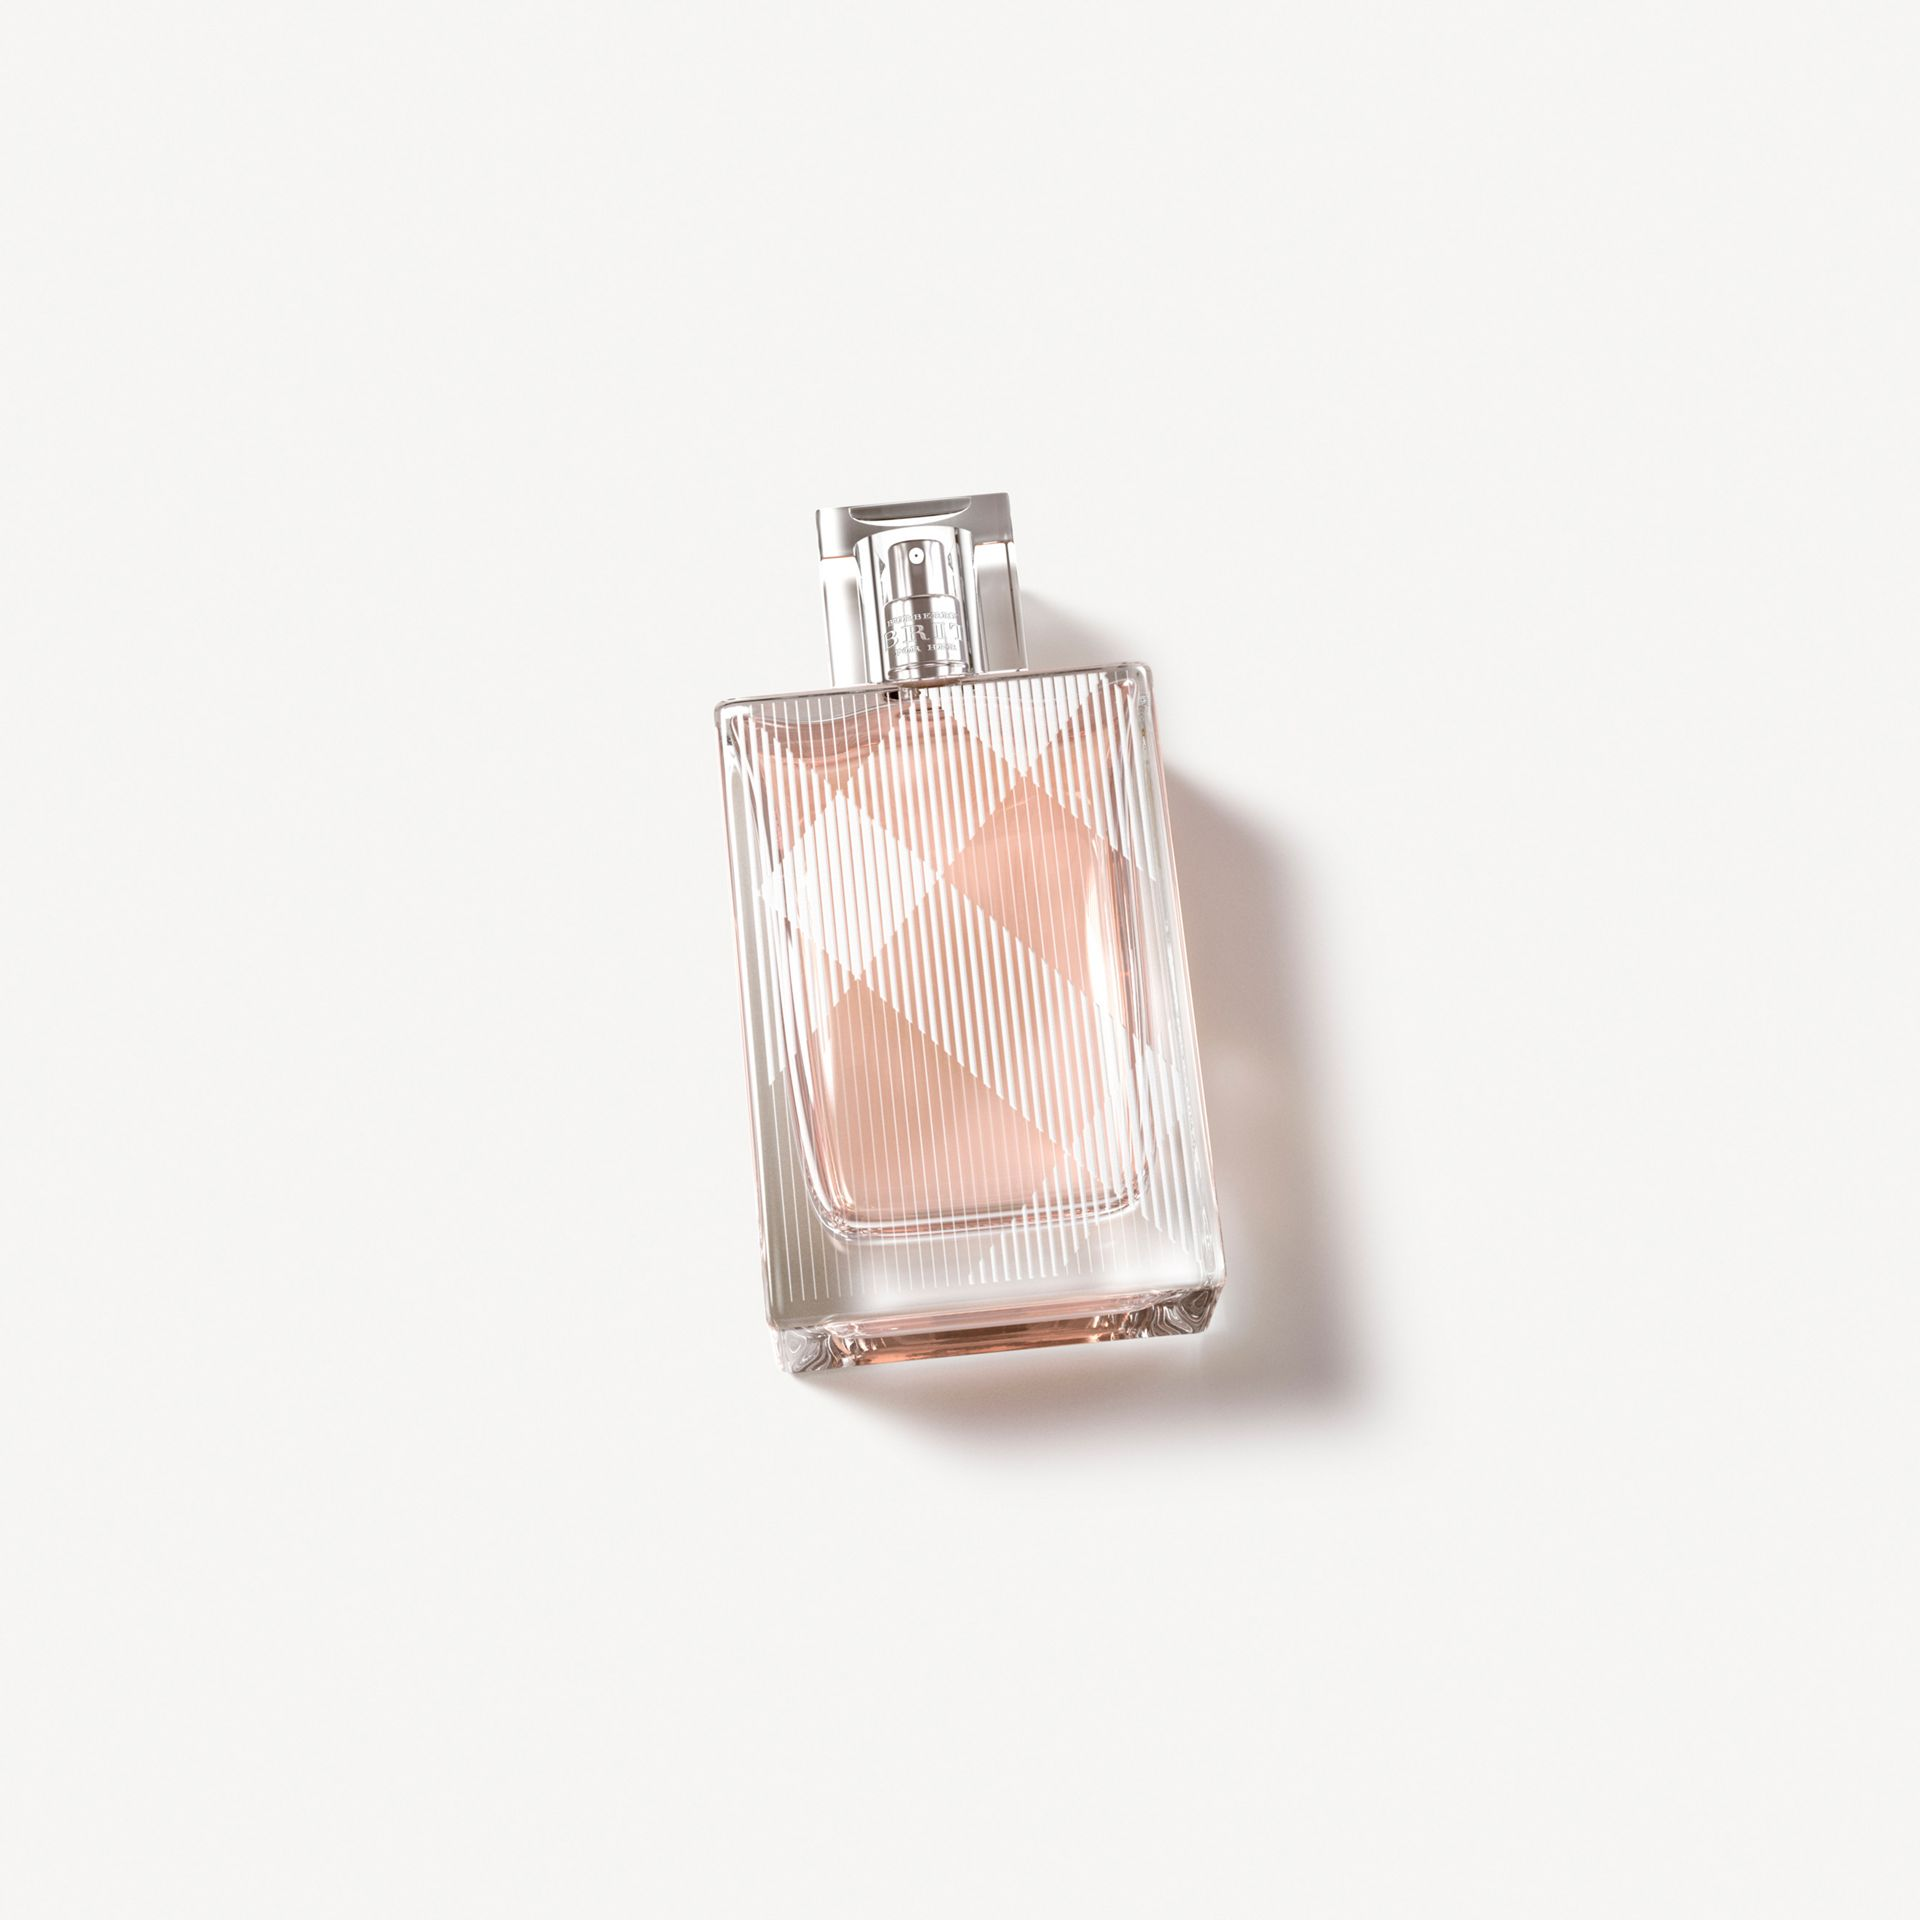 Burberry Brit For Her Eau de Toilette 50 ml - immagine della galleria 1